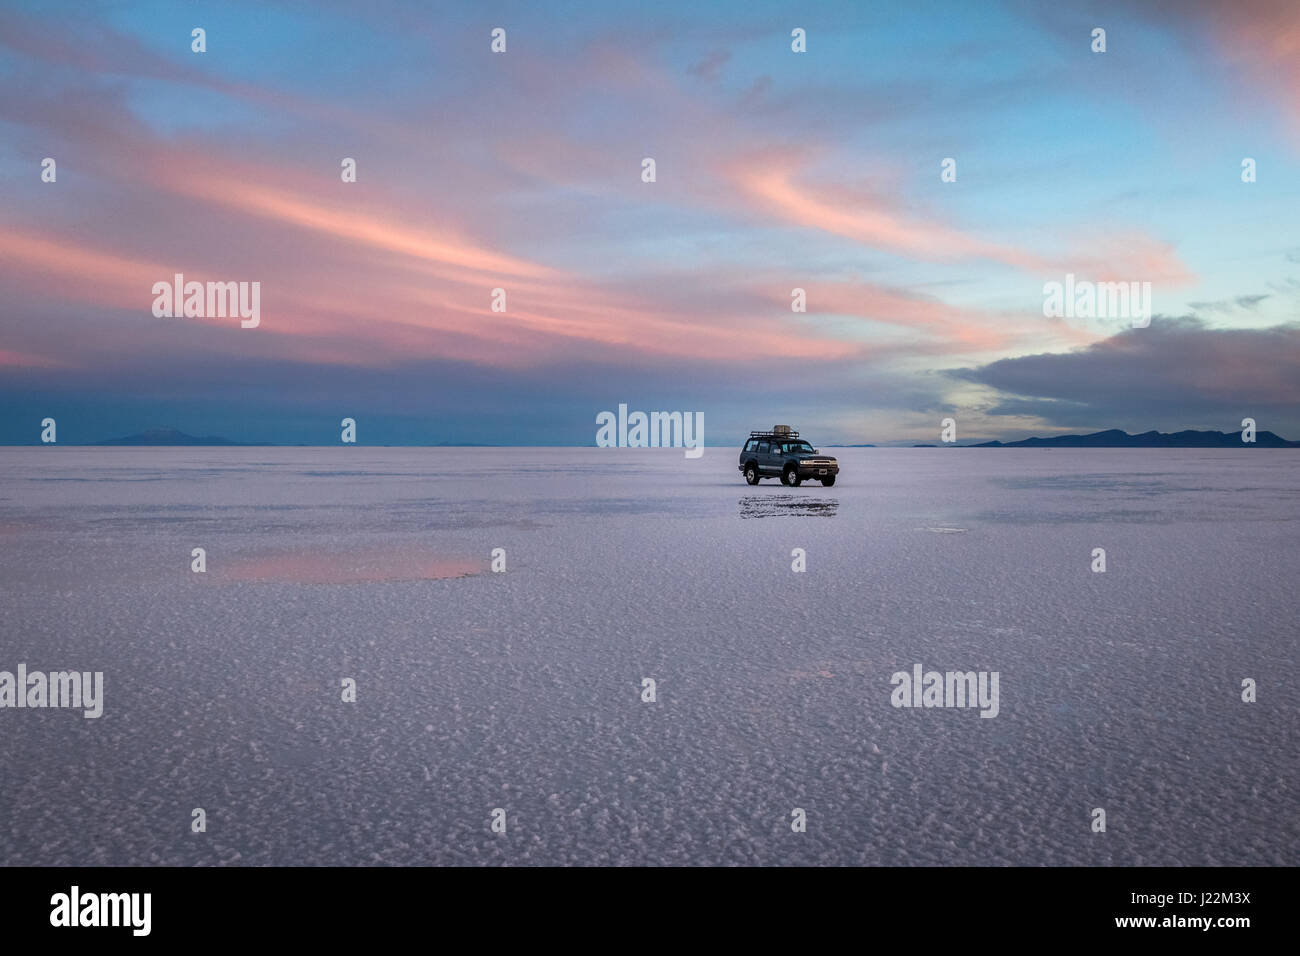 Off-road vehicle at sunrise in Salar de Uyuni salt flat - Potosi Department, Bolivia Stock Photo